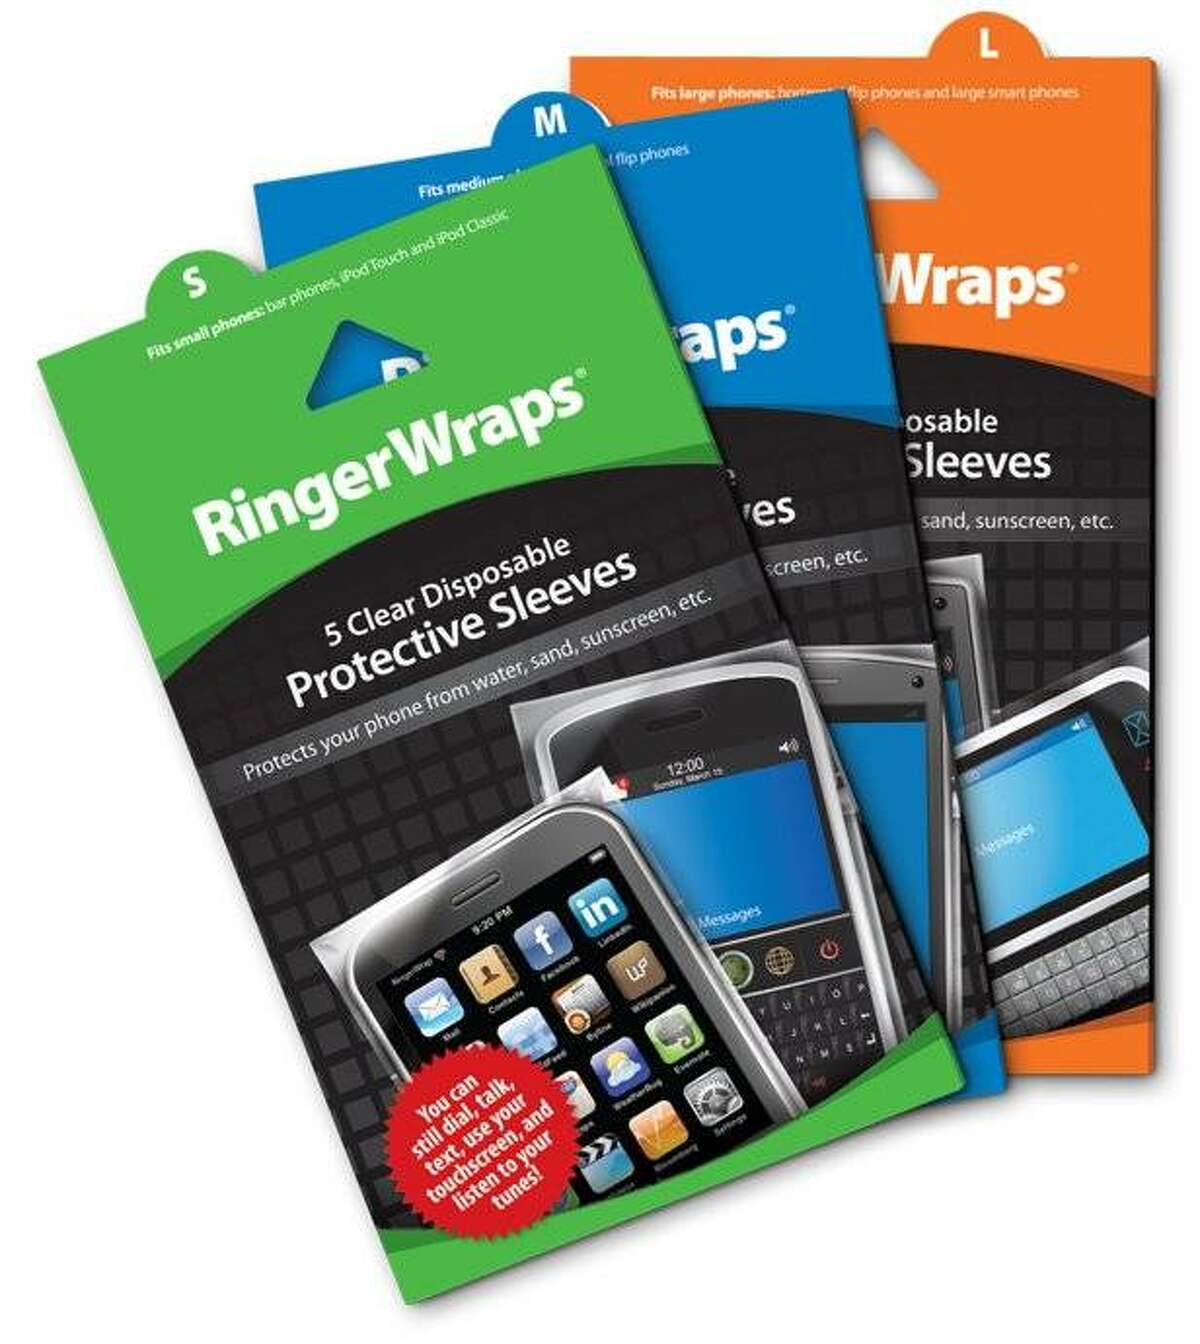 RingerWraps are clear, disposable sleeves that keep mobile phones dry in wet conditions.